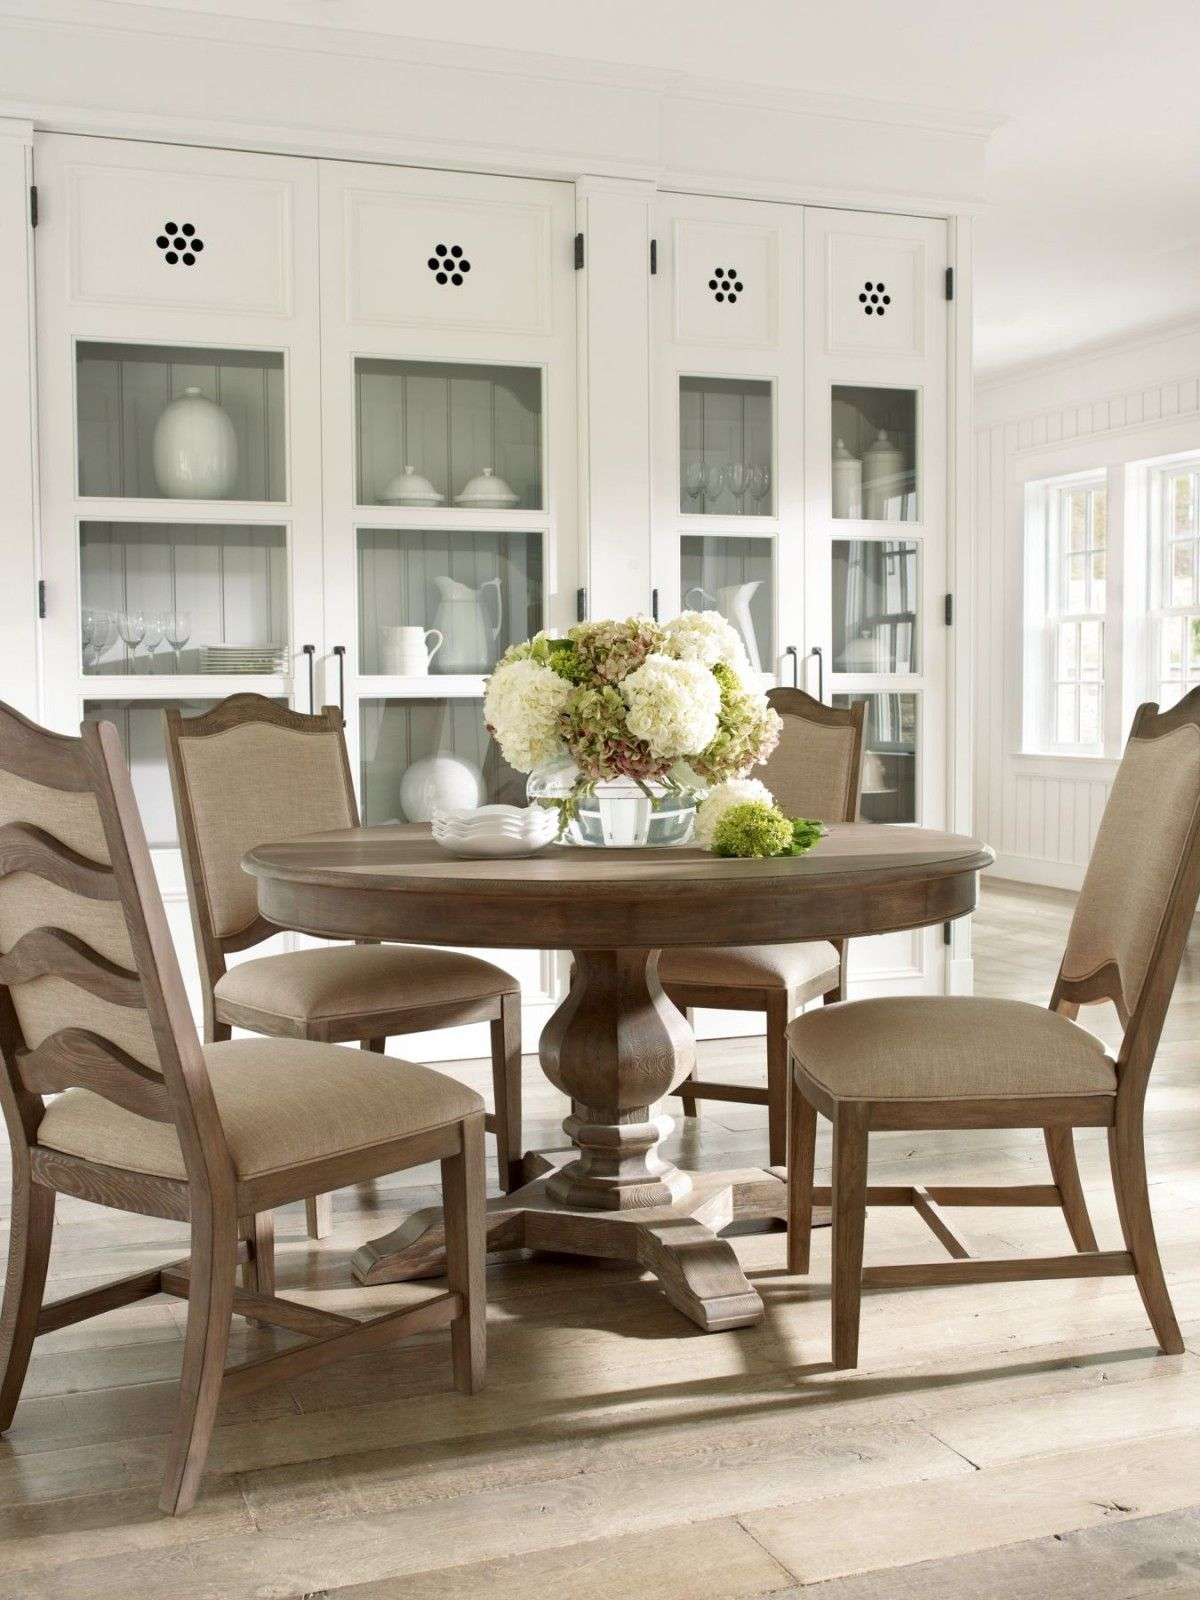 Ash Solids And Veneers Make Up This Gorgeous Round Dining